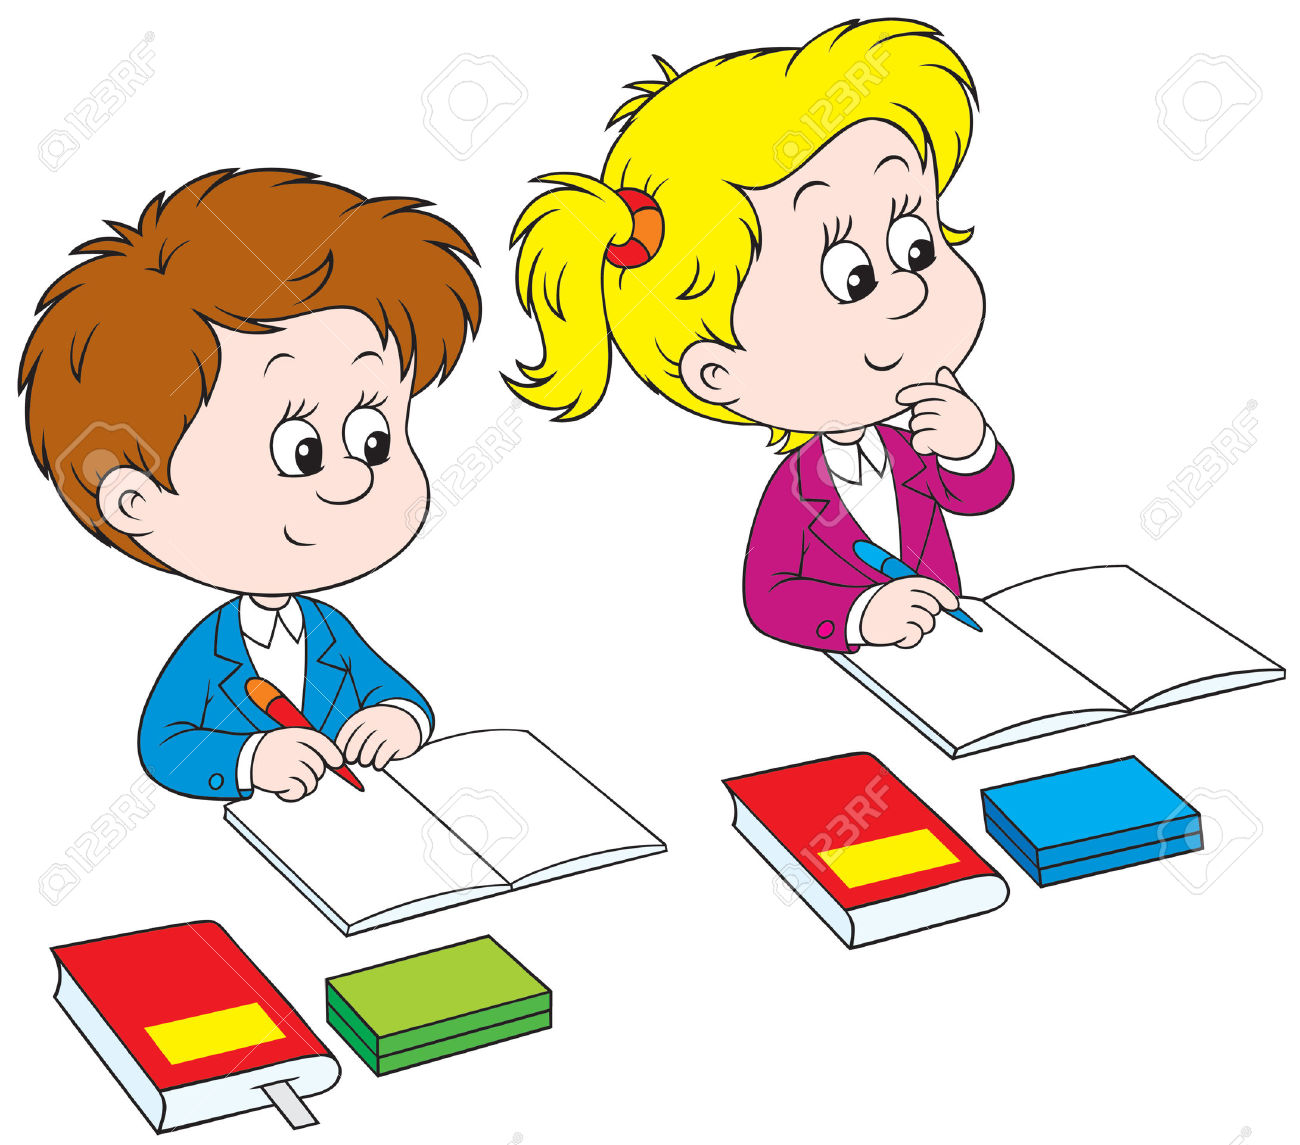 hight resolution of kids writing clipart schoolchildren royalty free cliparts vectors and stock